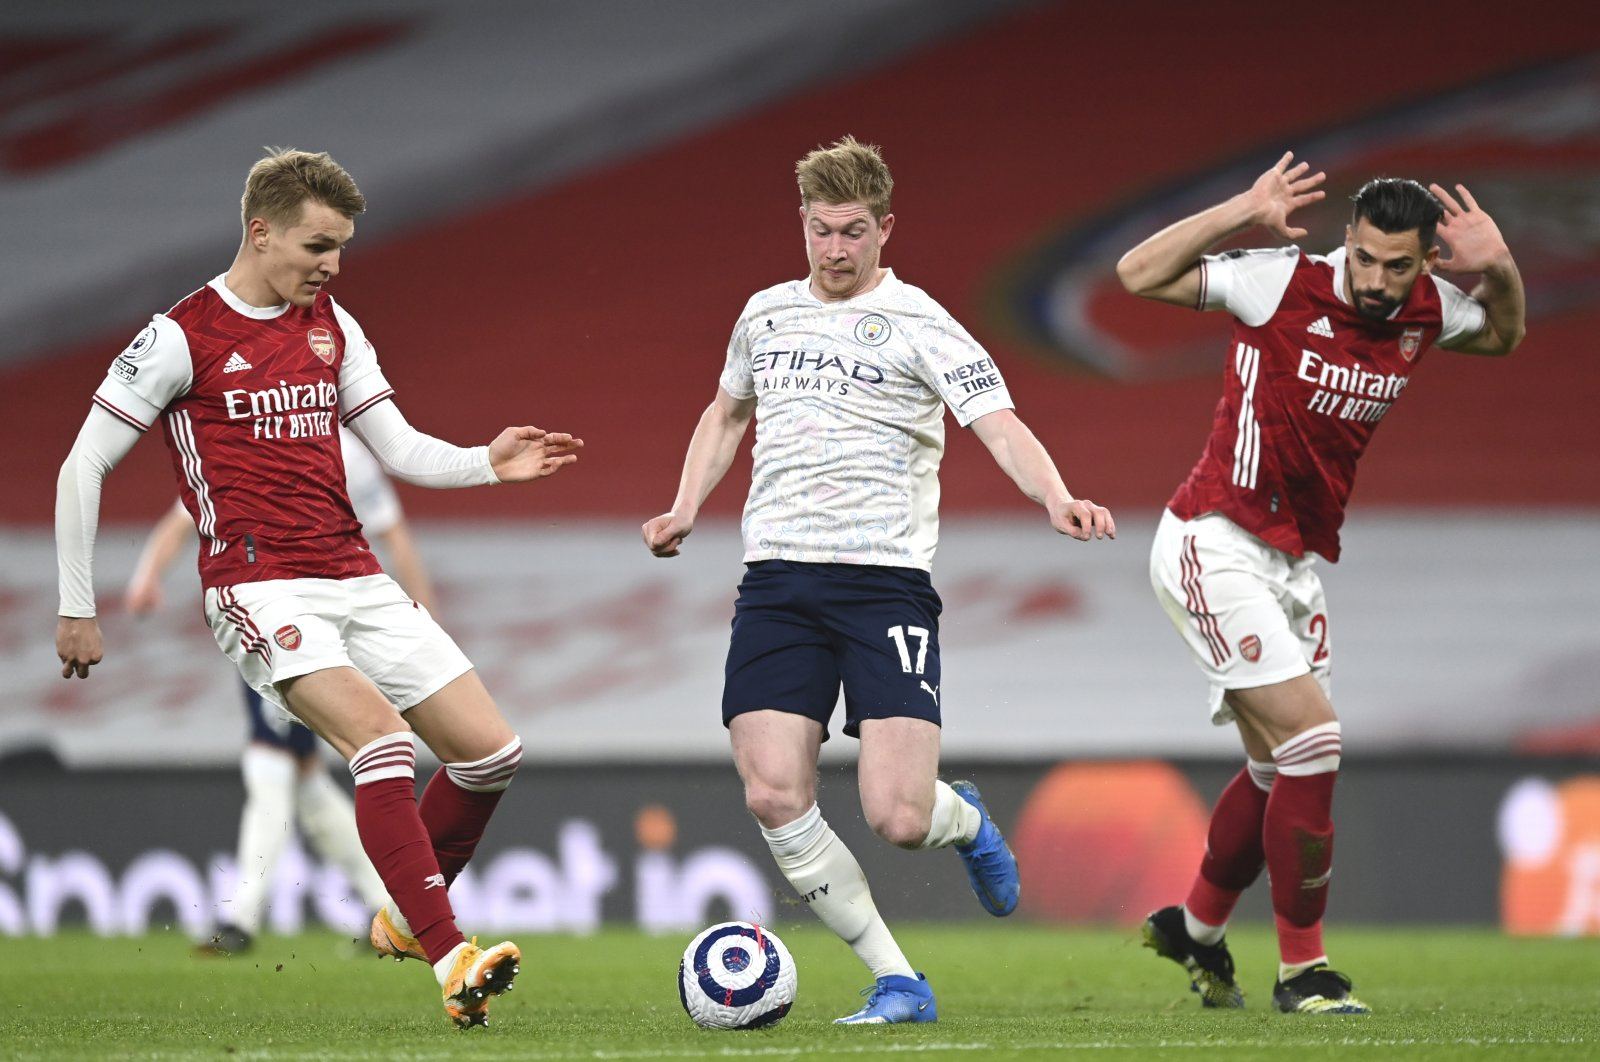 Arsenal's Martin Odegaard (L) and Manchester City's Kevin De Bruyne challenge for the ball during a Premier League match at the Emirates, London, England, Sunday, Feb. 21, 2021. (AP Photo)